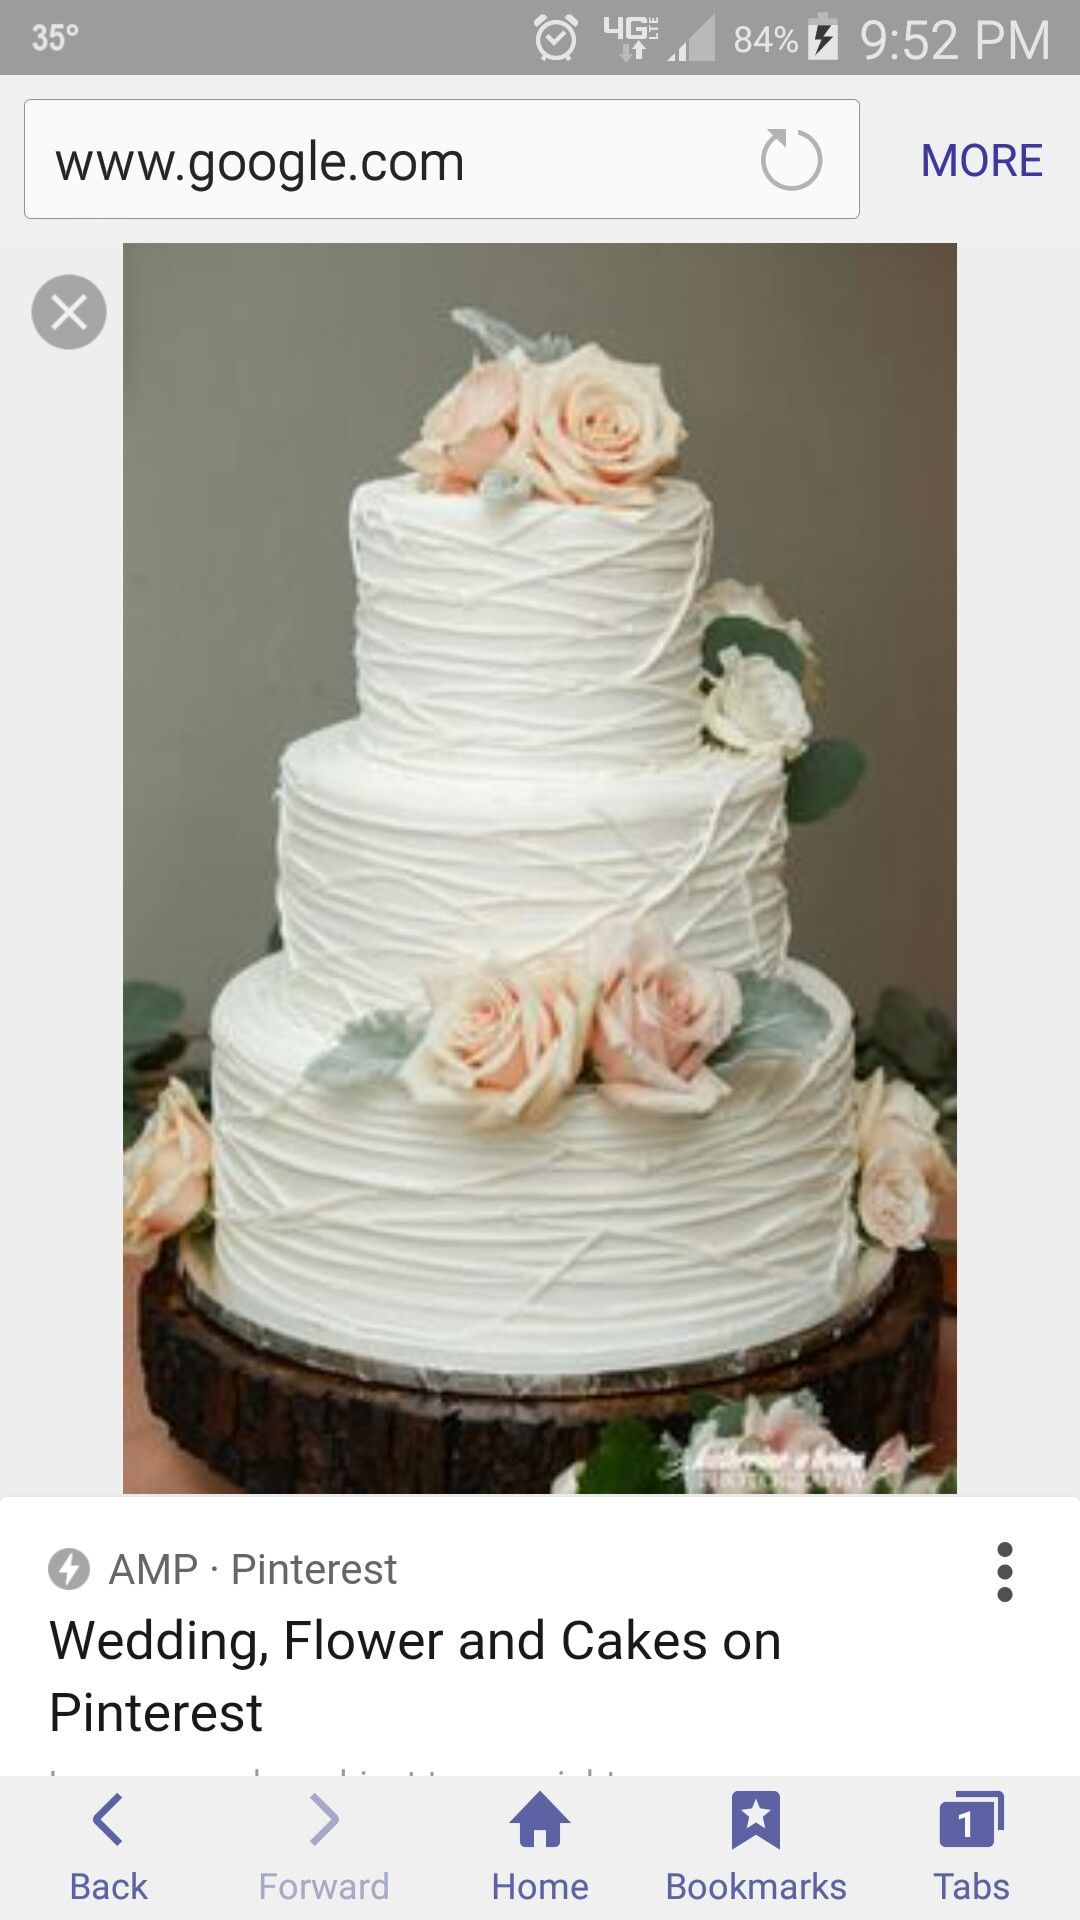 Pin by Megan Lloyd on Budget wedding Pinterest Wedding cake